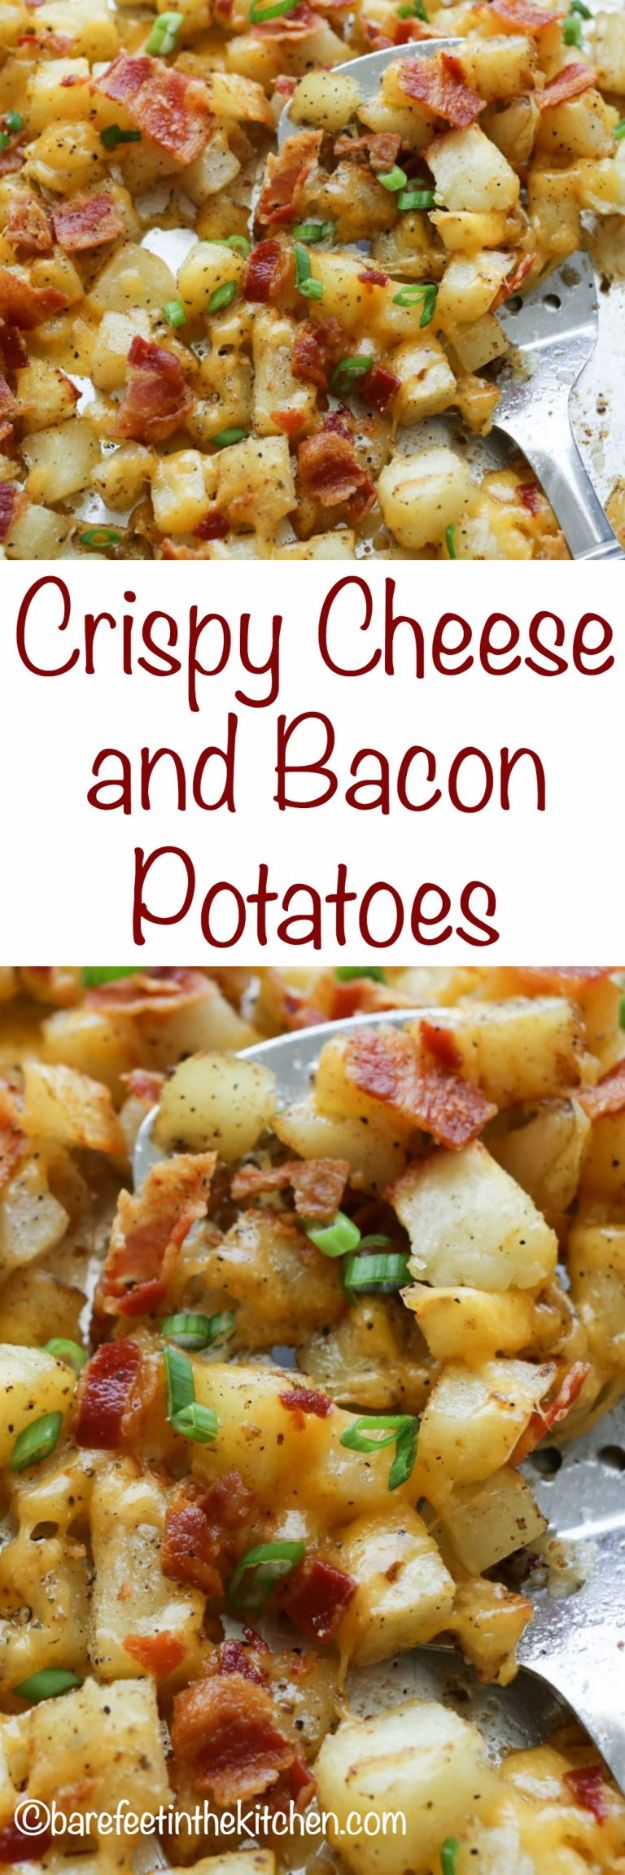 Potato Recipes - Crispy Cheese and Bacon Potatoes - Easy, Quick and Healthy Potato Recipes - How To Make Roasted, In Oven, Fried, Mashed and Red Potatoes - Easy Potato Side Dishes and Soup Recipe Ideas for Dinner, Breakfast, Lunch, Appetizer and Snack http://diyjoy.com/potato-recipes